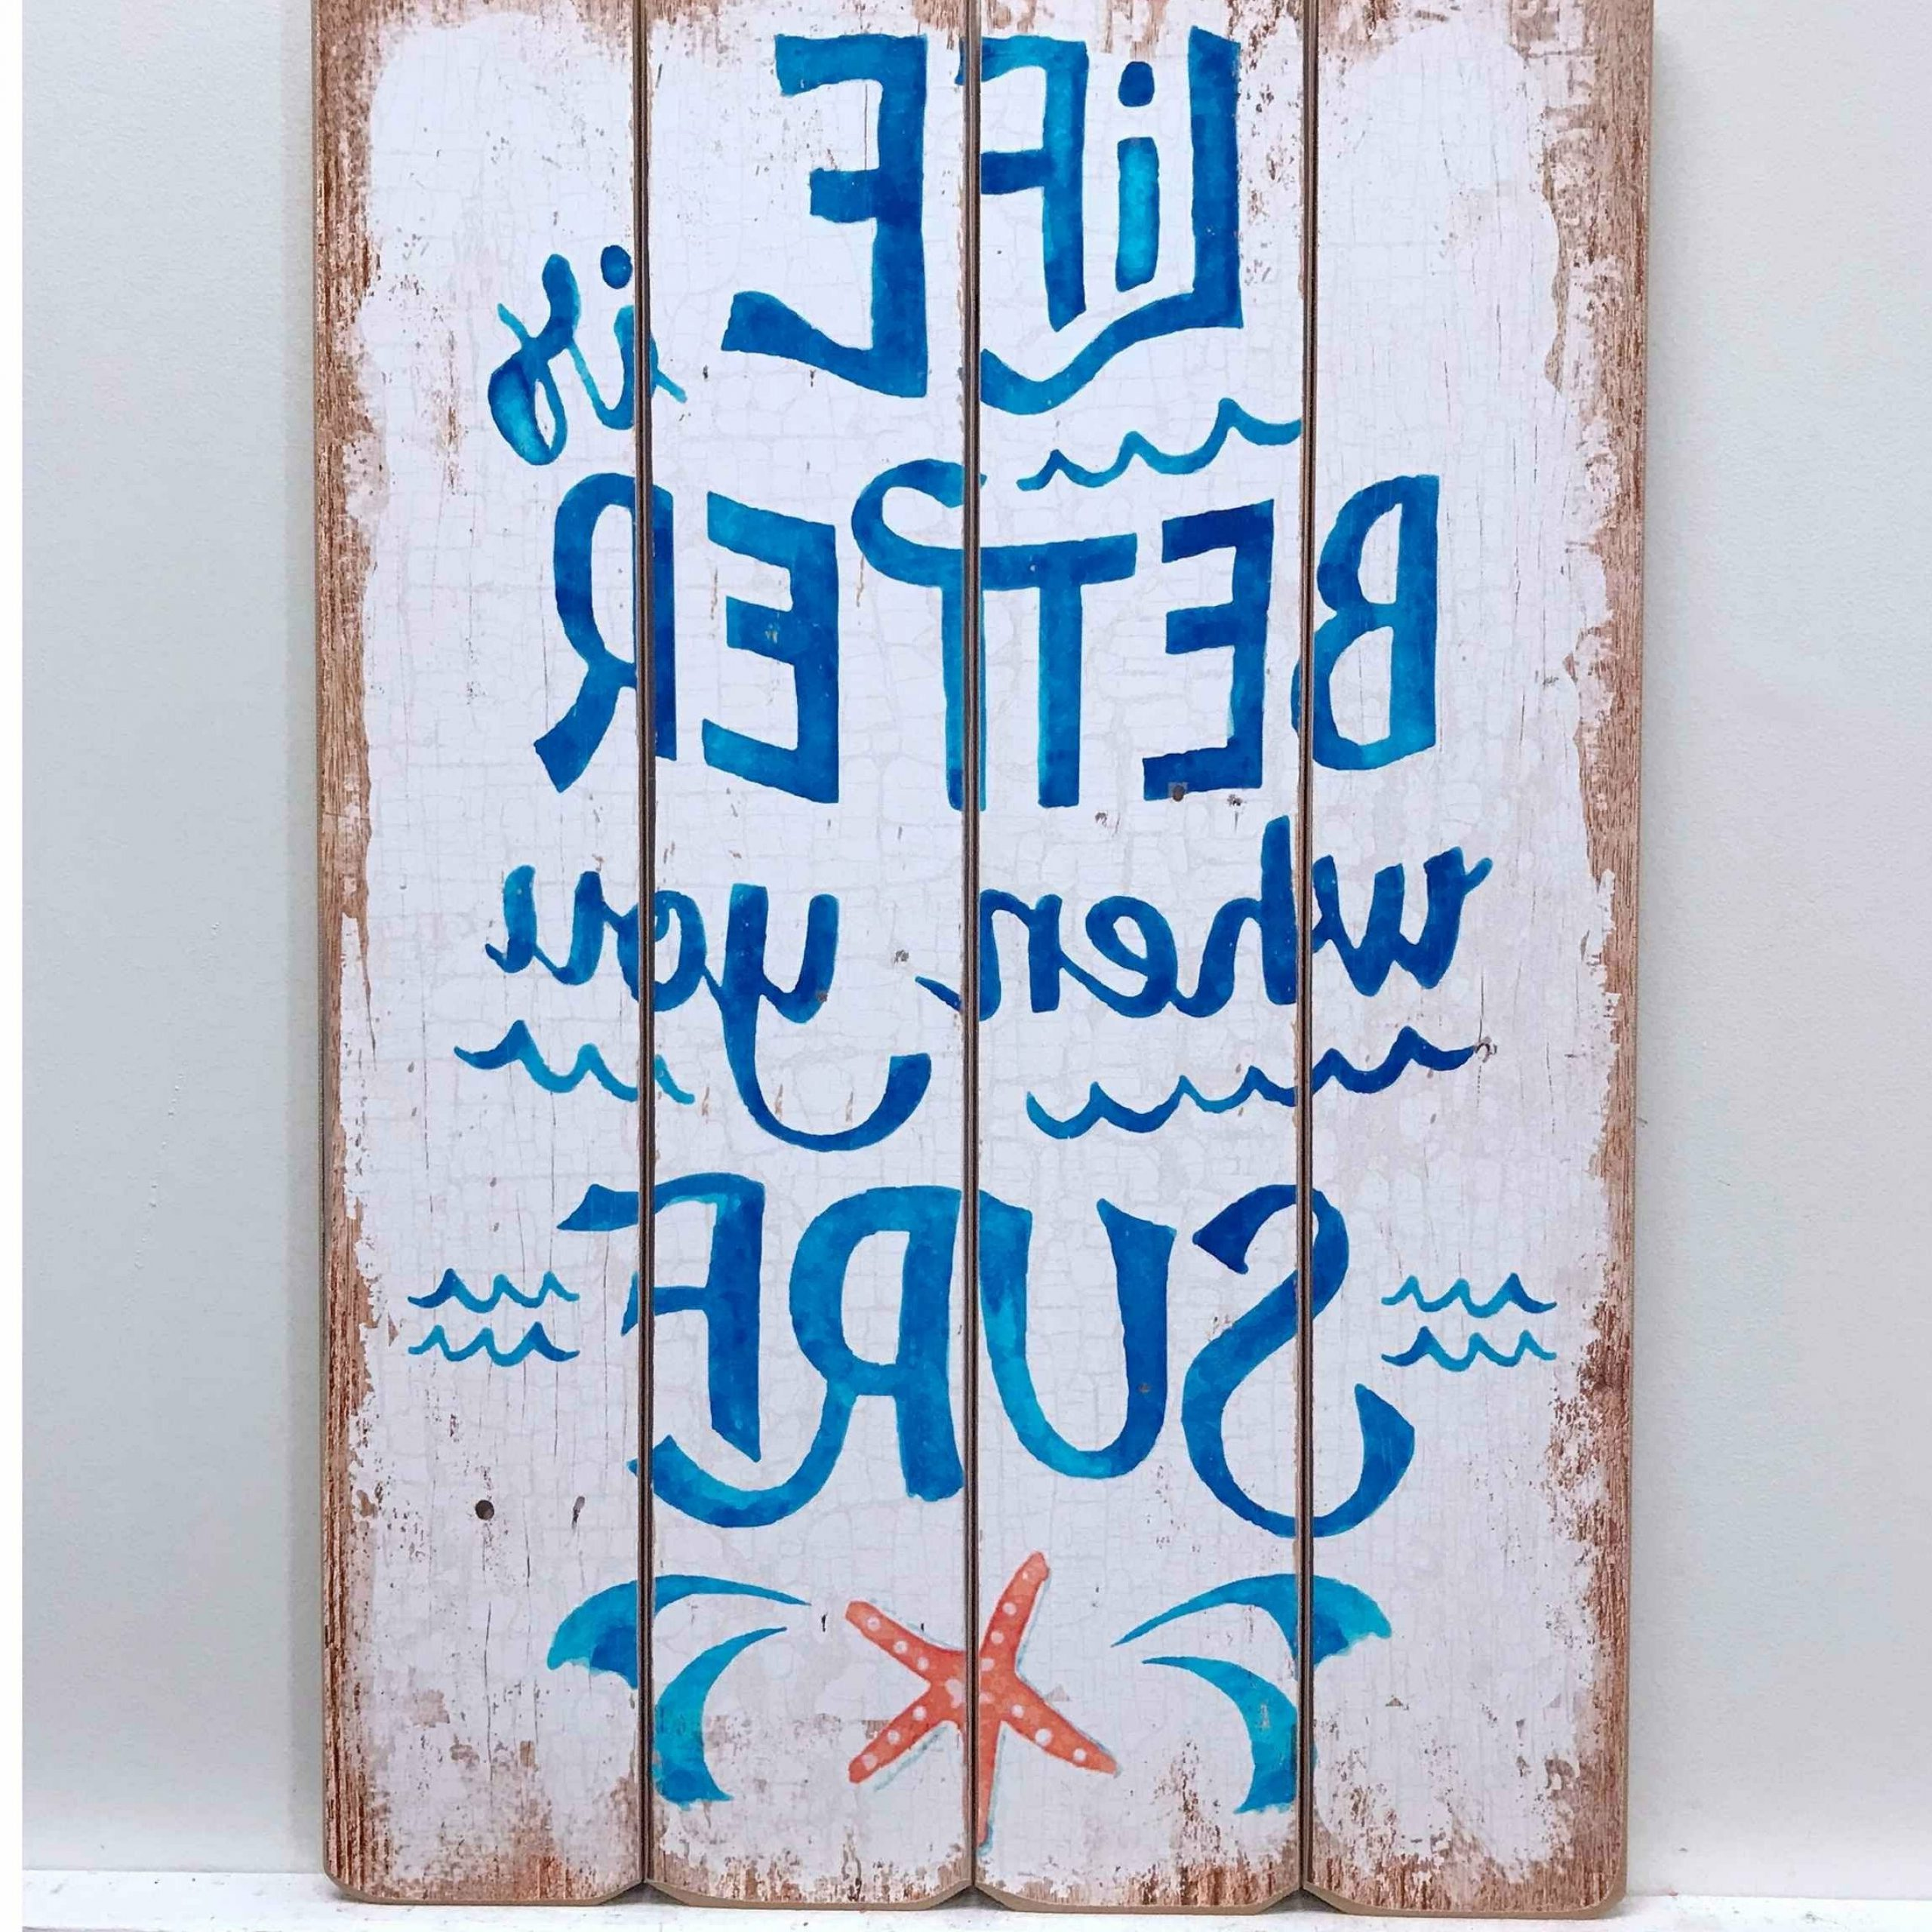 Surf And Life Wooden Sign Wall Décor Throughout Most Popular Family Wood Wall Décor By Highland Dunes (View 20 of 20)